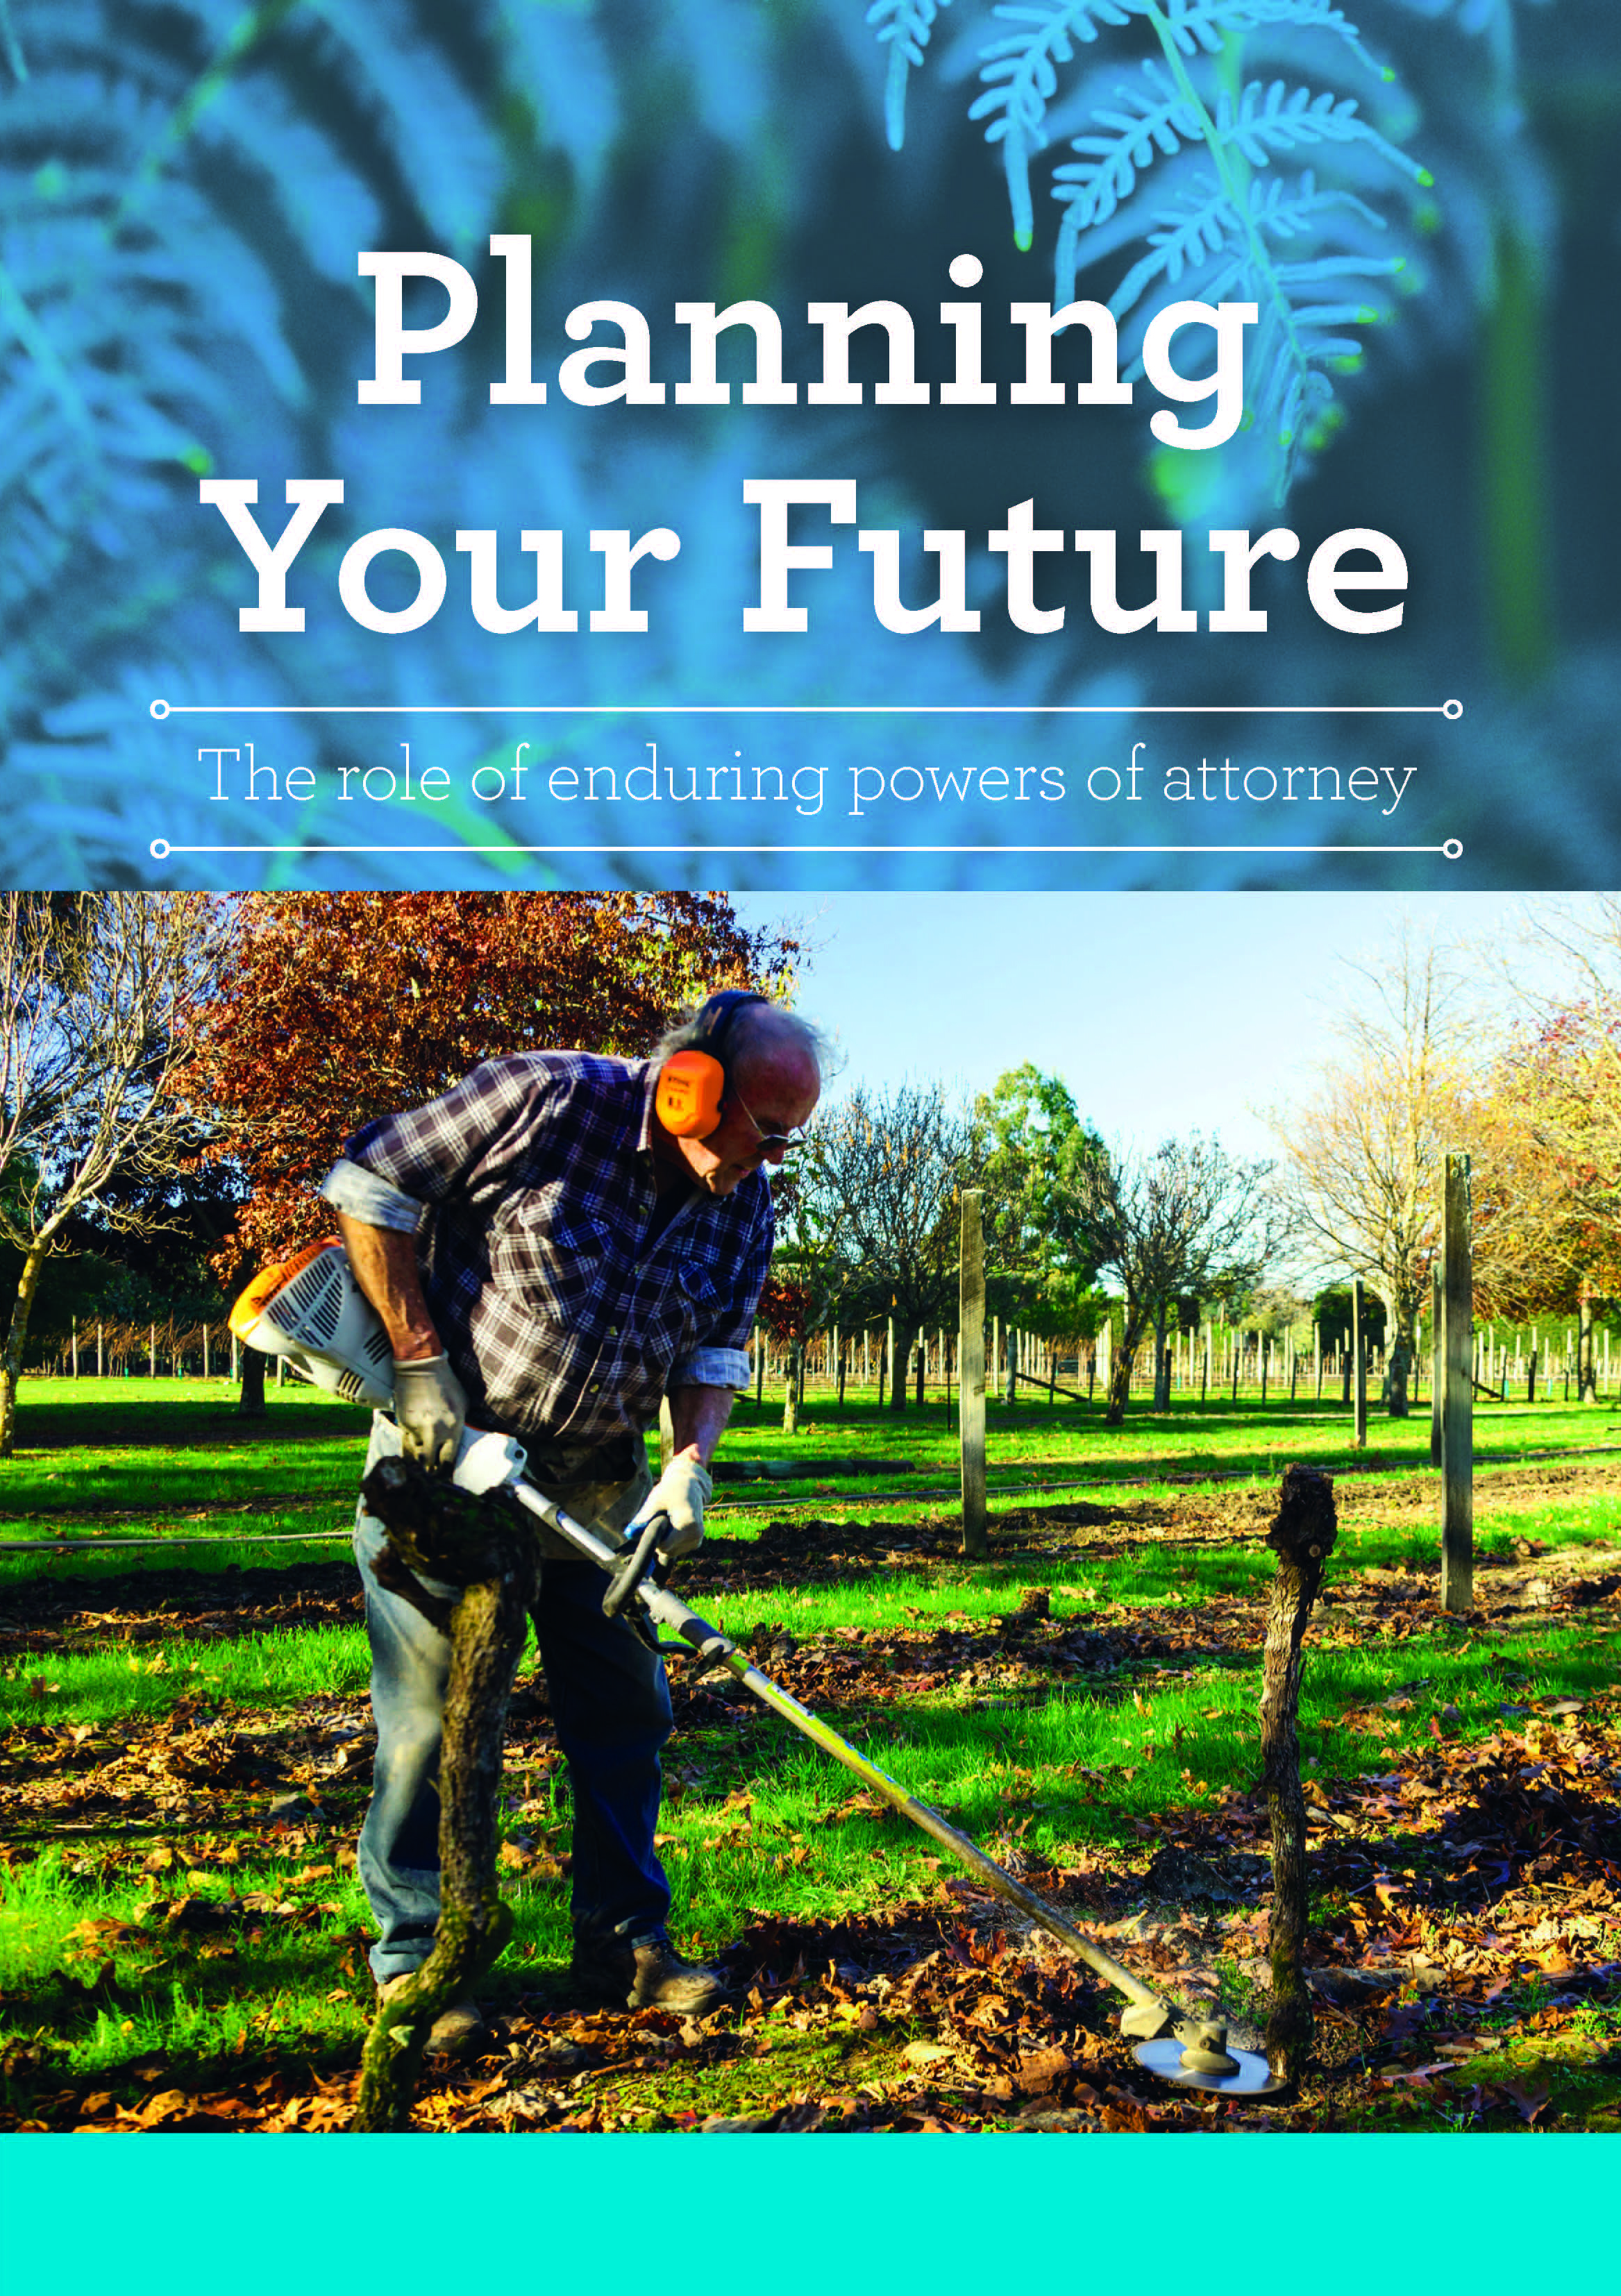 Cover of book 'Planning Your Future: The role of enduring powers of attorney'. Image of older man using leaf blower